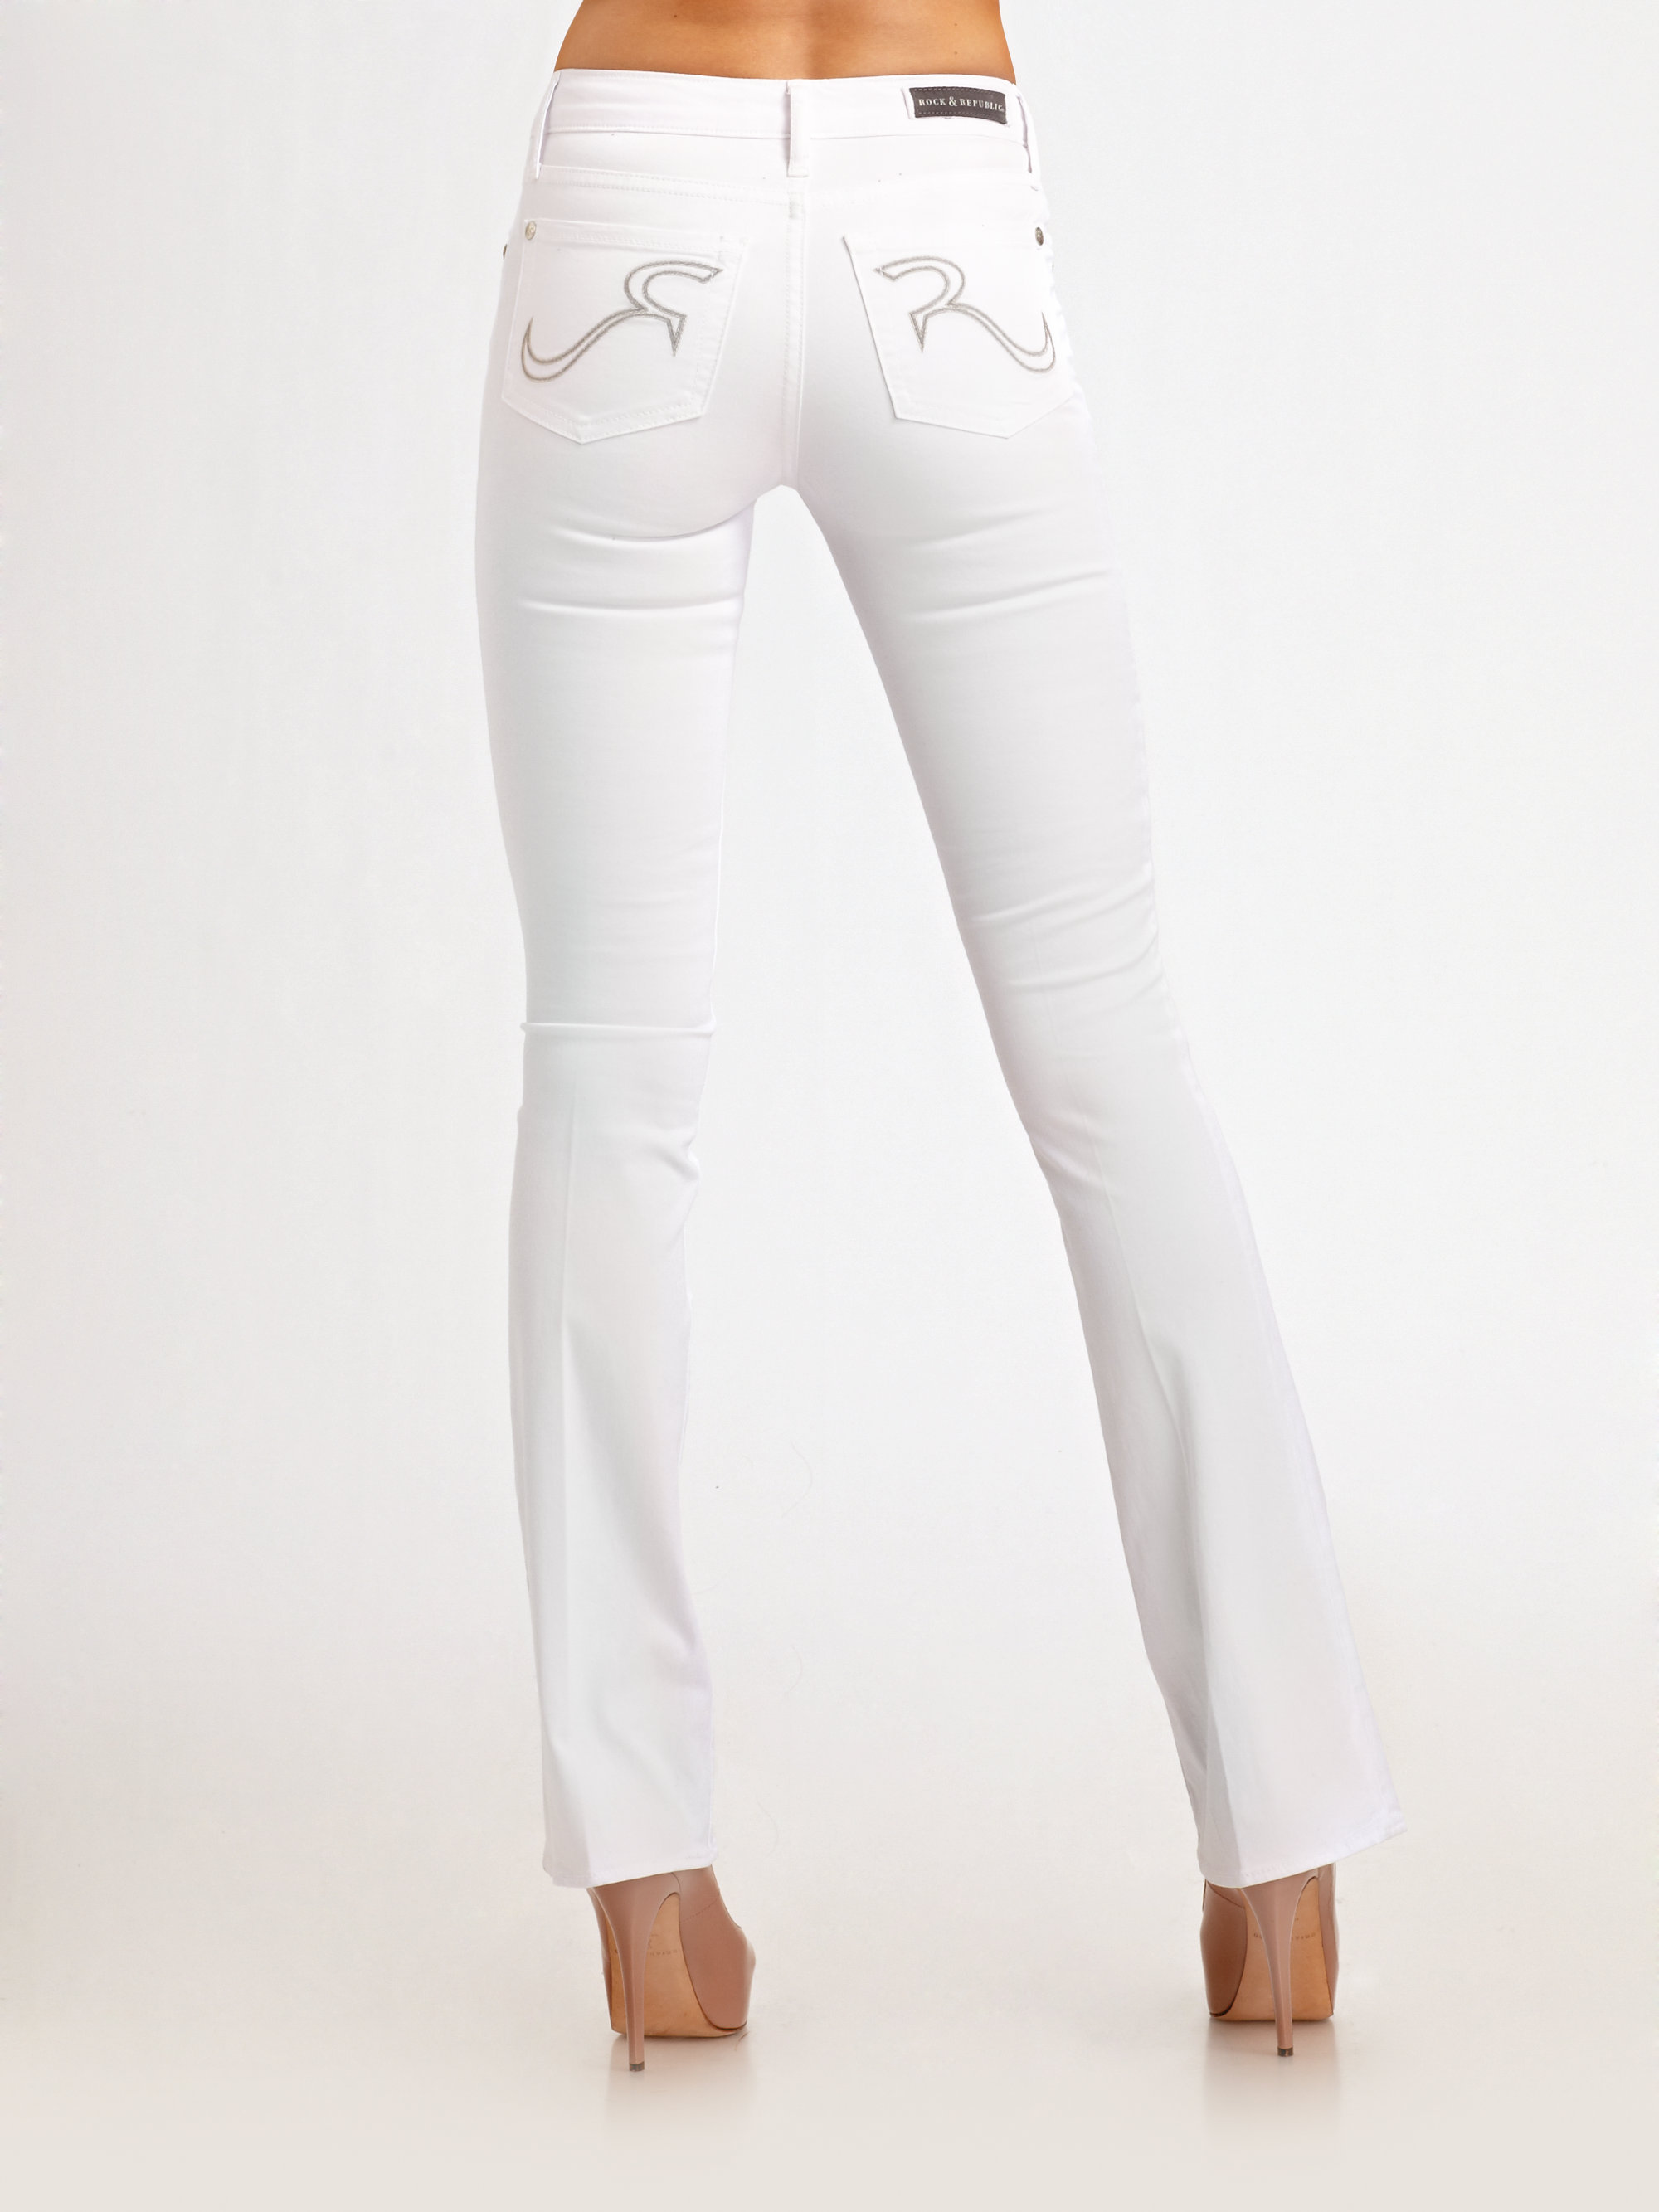 Rock & republic Noelle Bootcut Jeans in White | Lyst